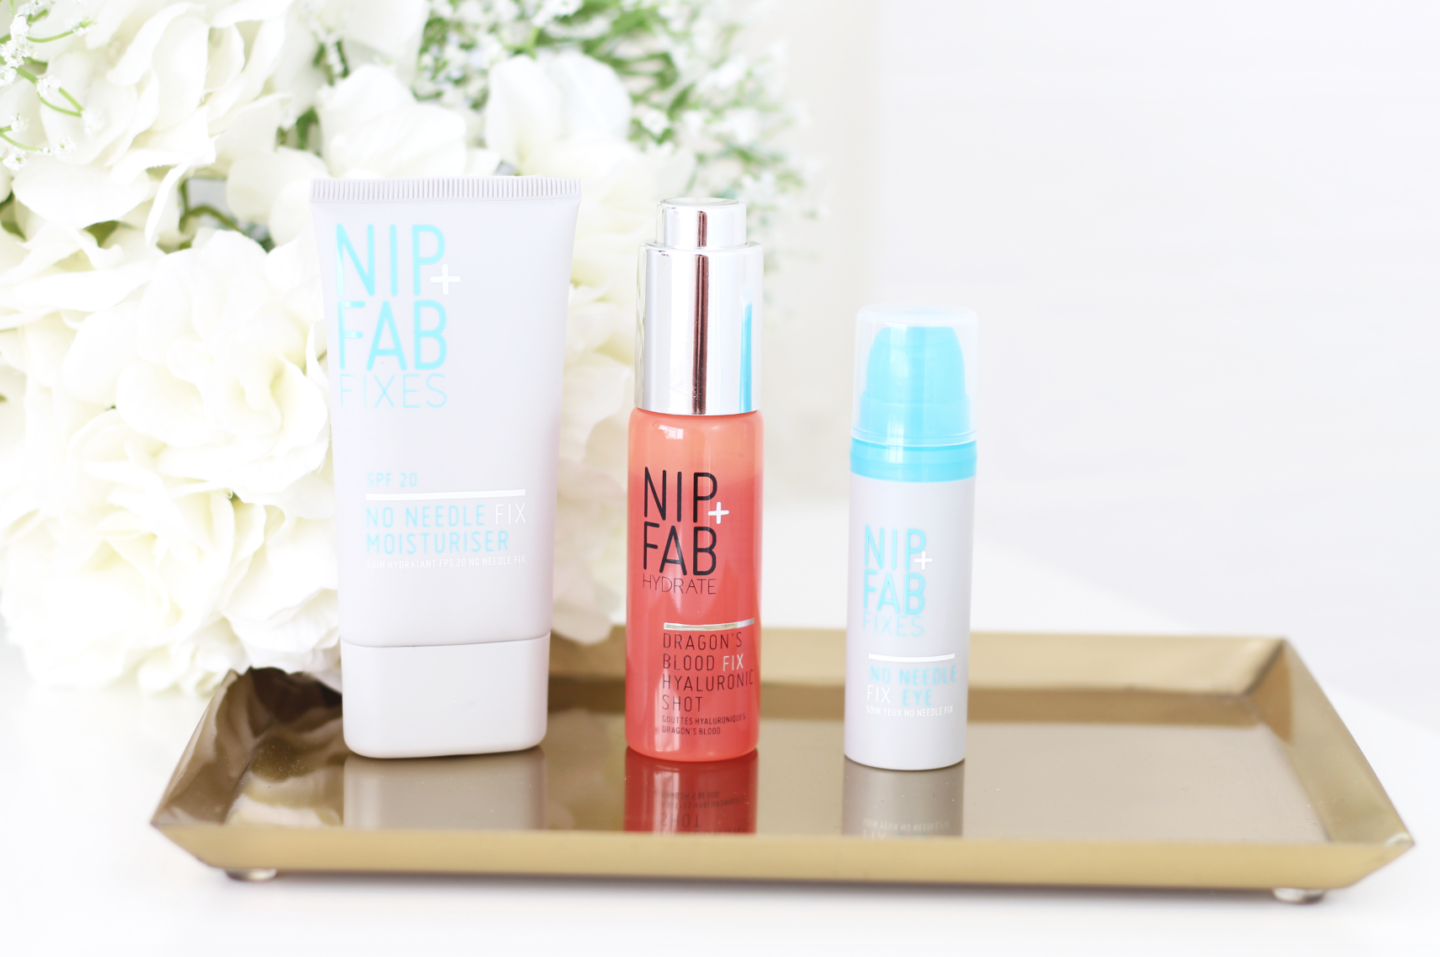 THREE TO TRY FROM NIP+FAB